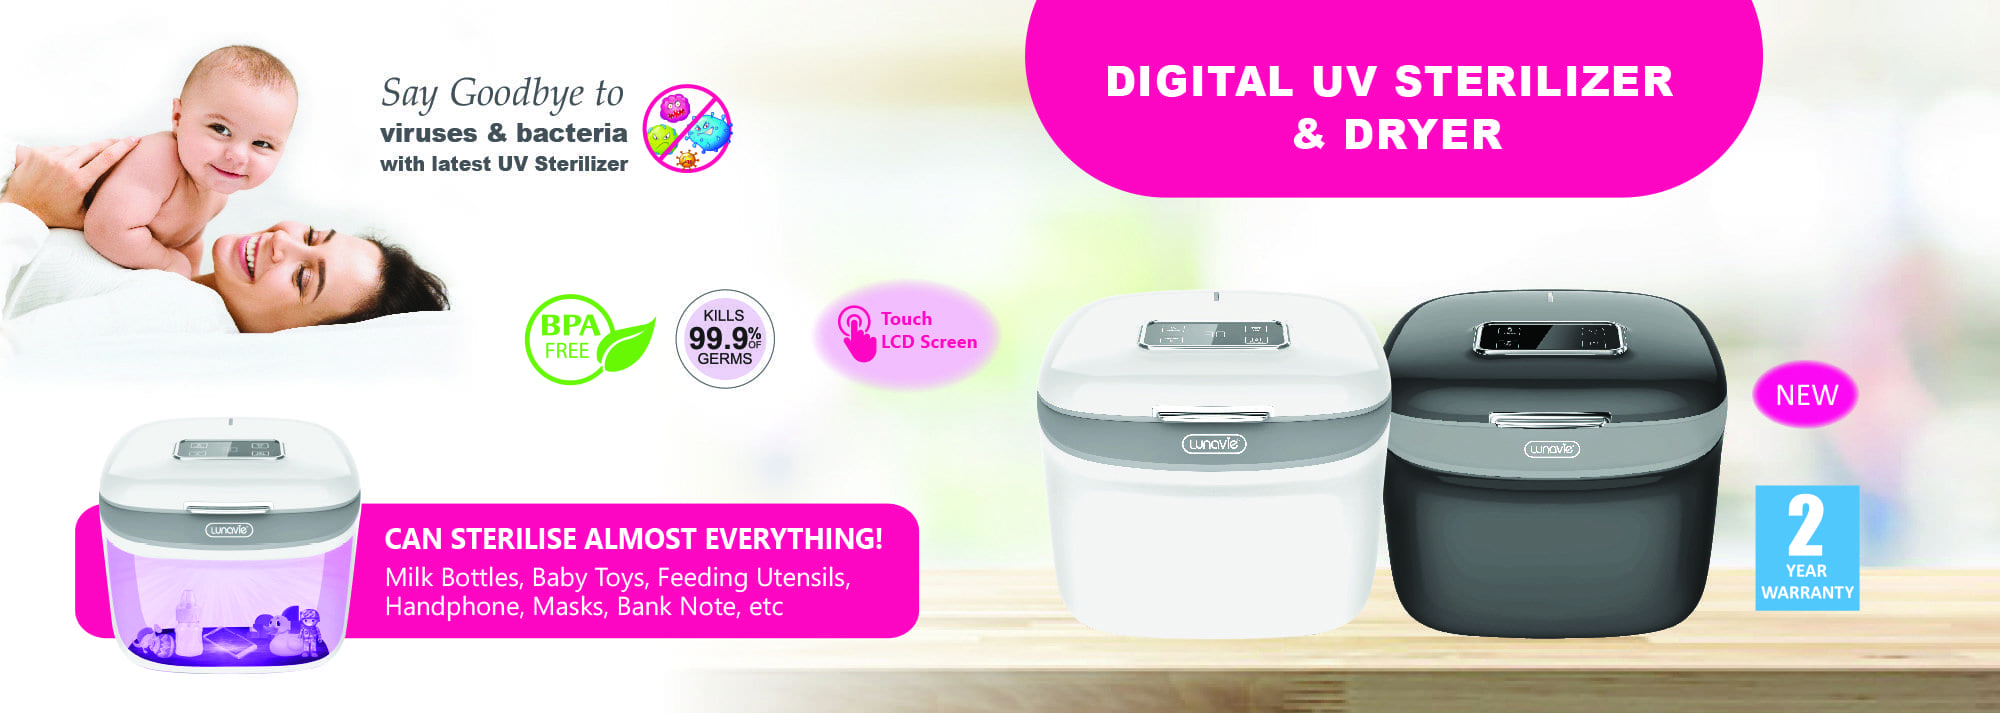 Digital UV Sterilizer